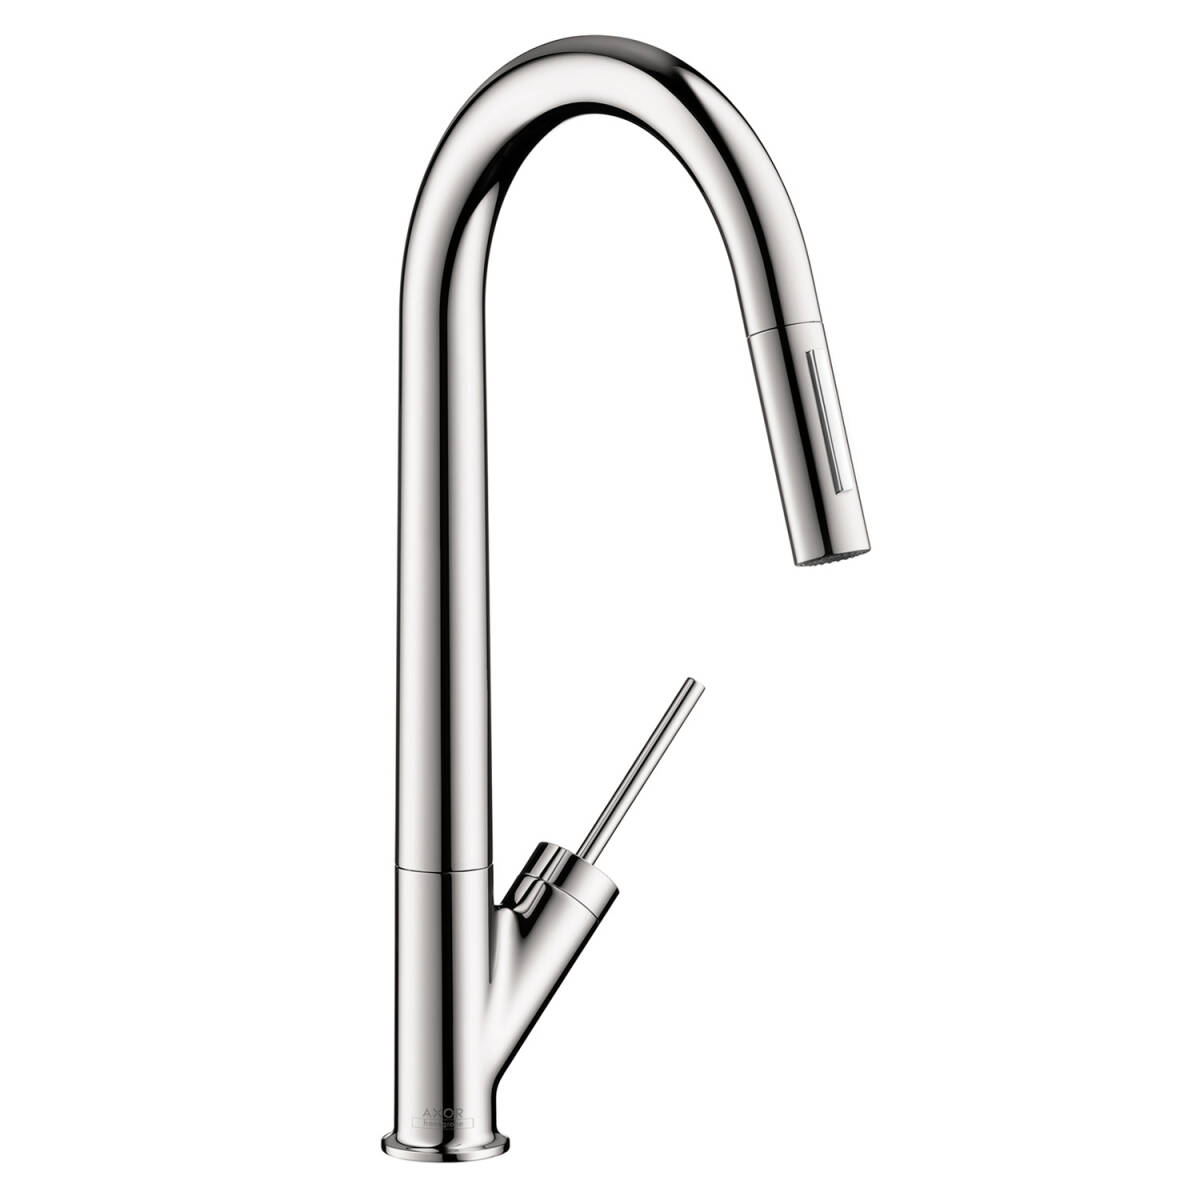 Single lever kitchen mixer 270 with pull-out spray, Chrome, 10821001